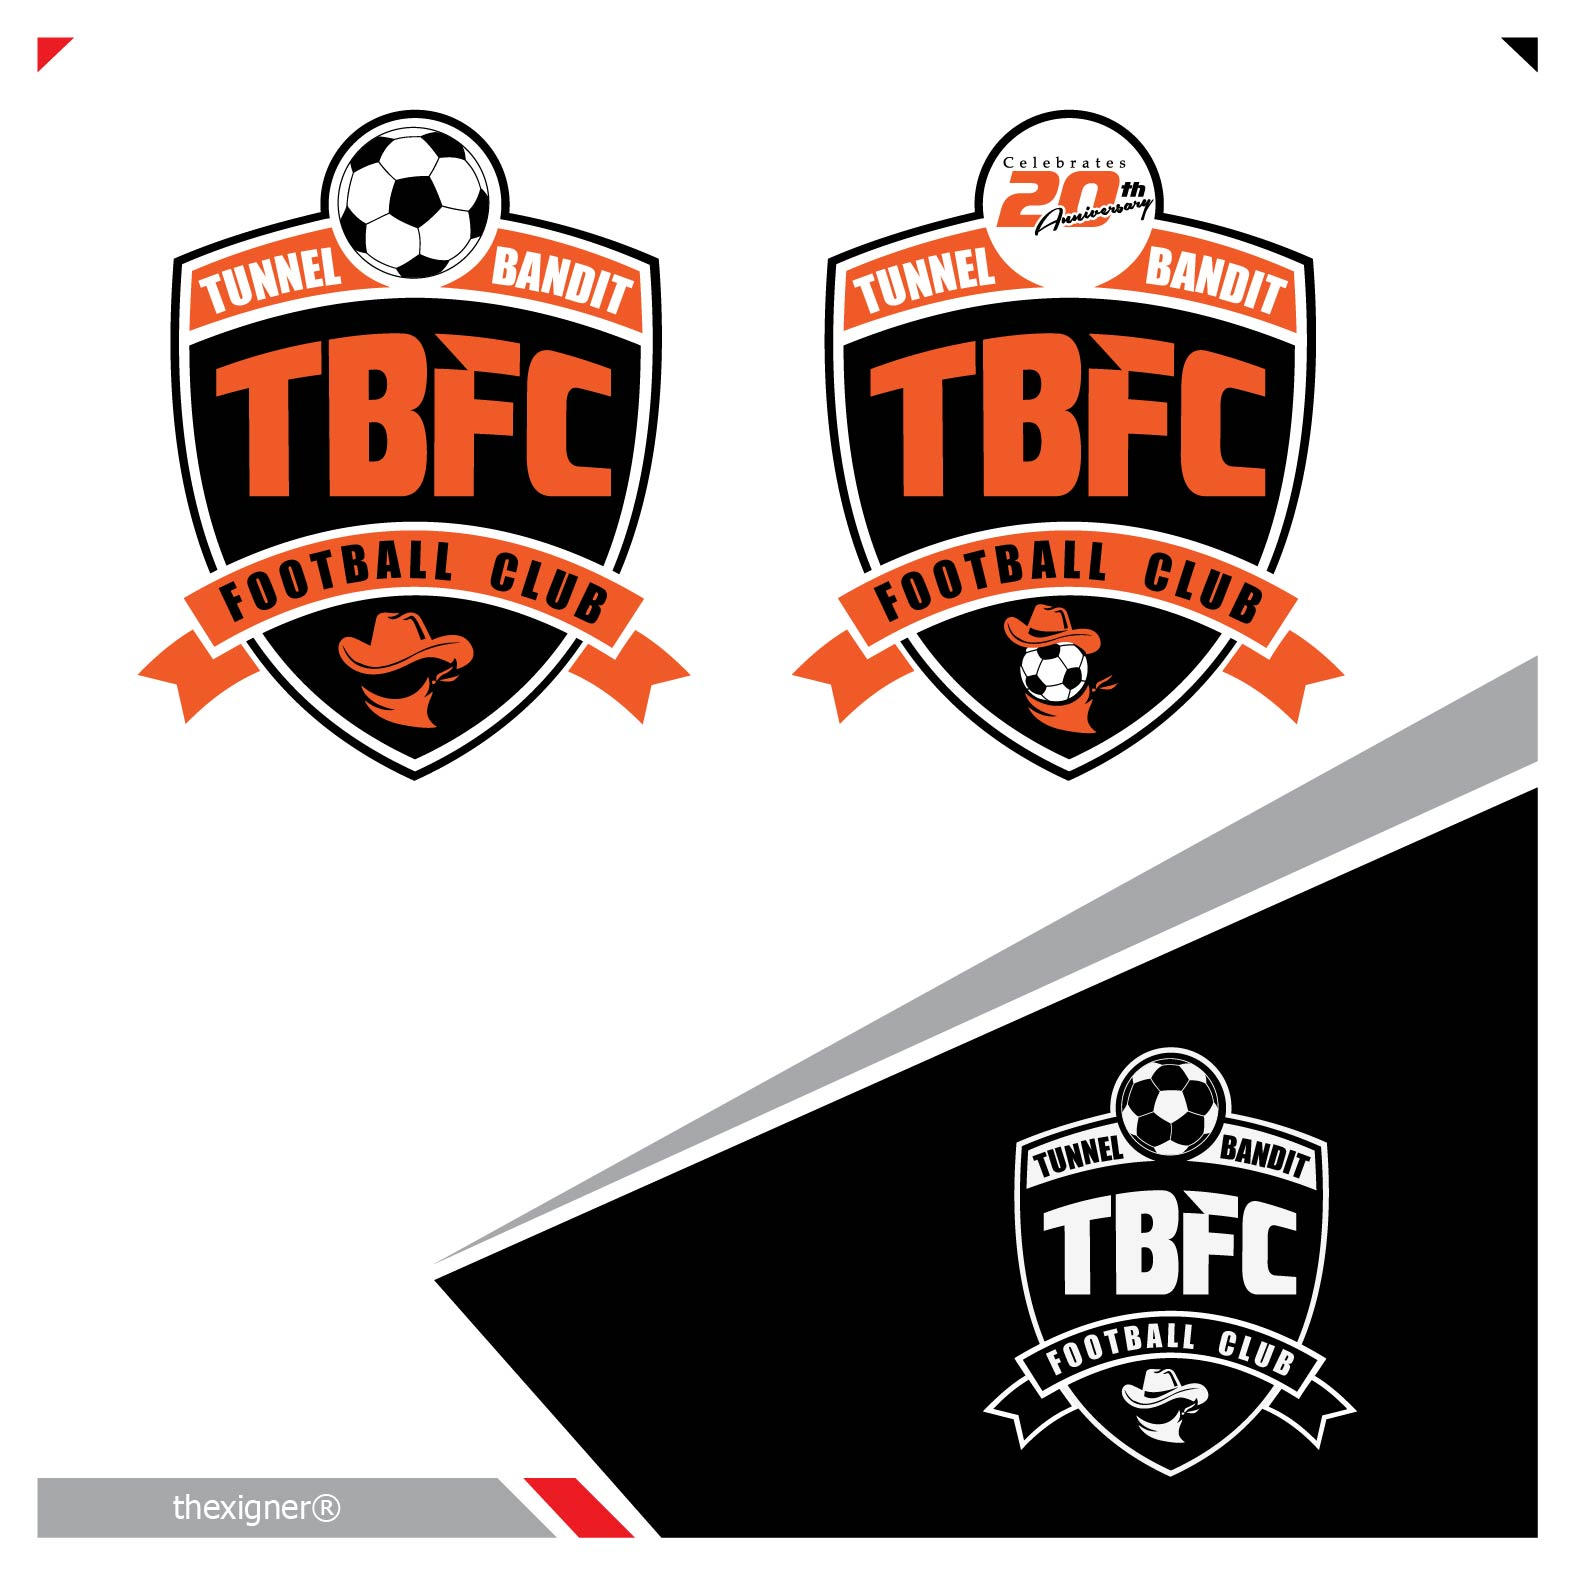 Logo Design by lagalag - Entry No. 34 in the Logo Design Contest Tunnel Bandits Football Club (TBFC) Logo Design.